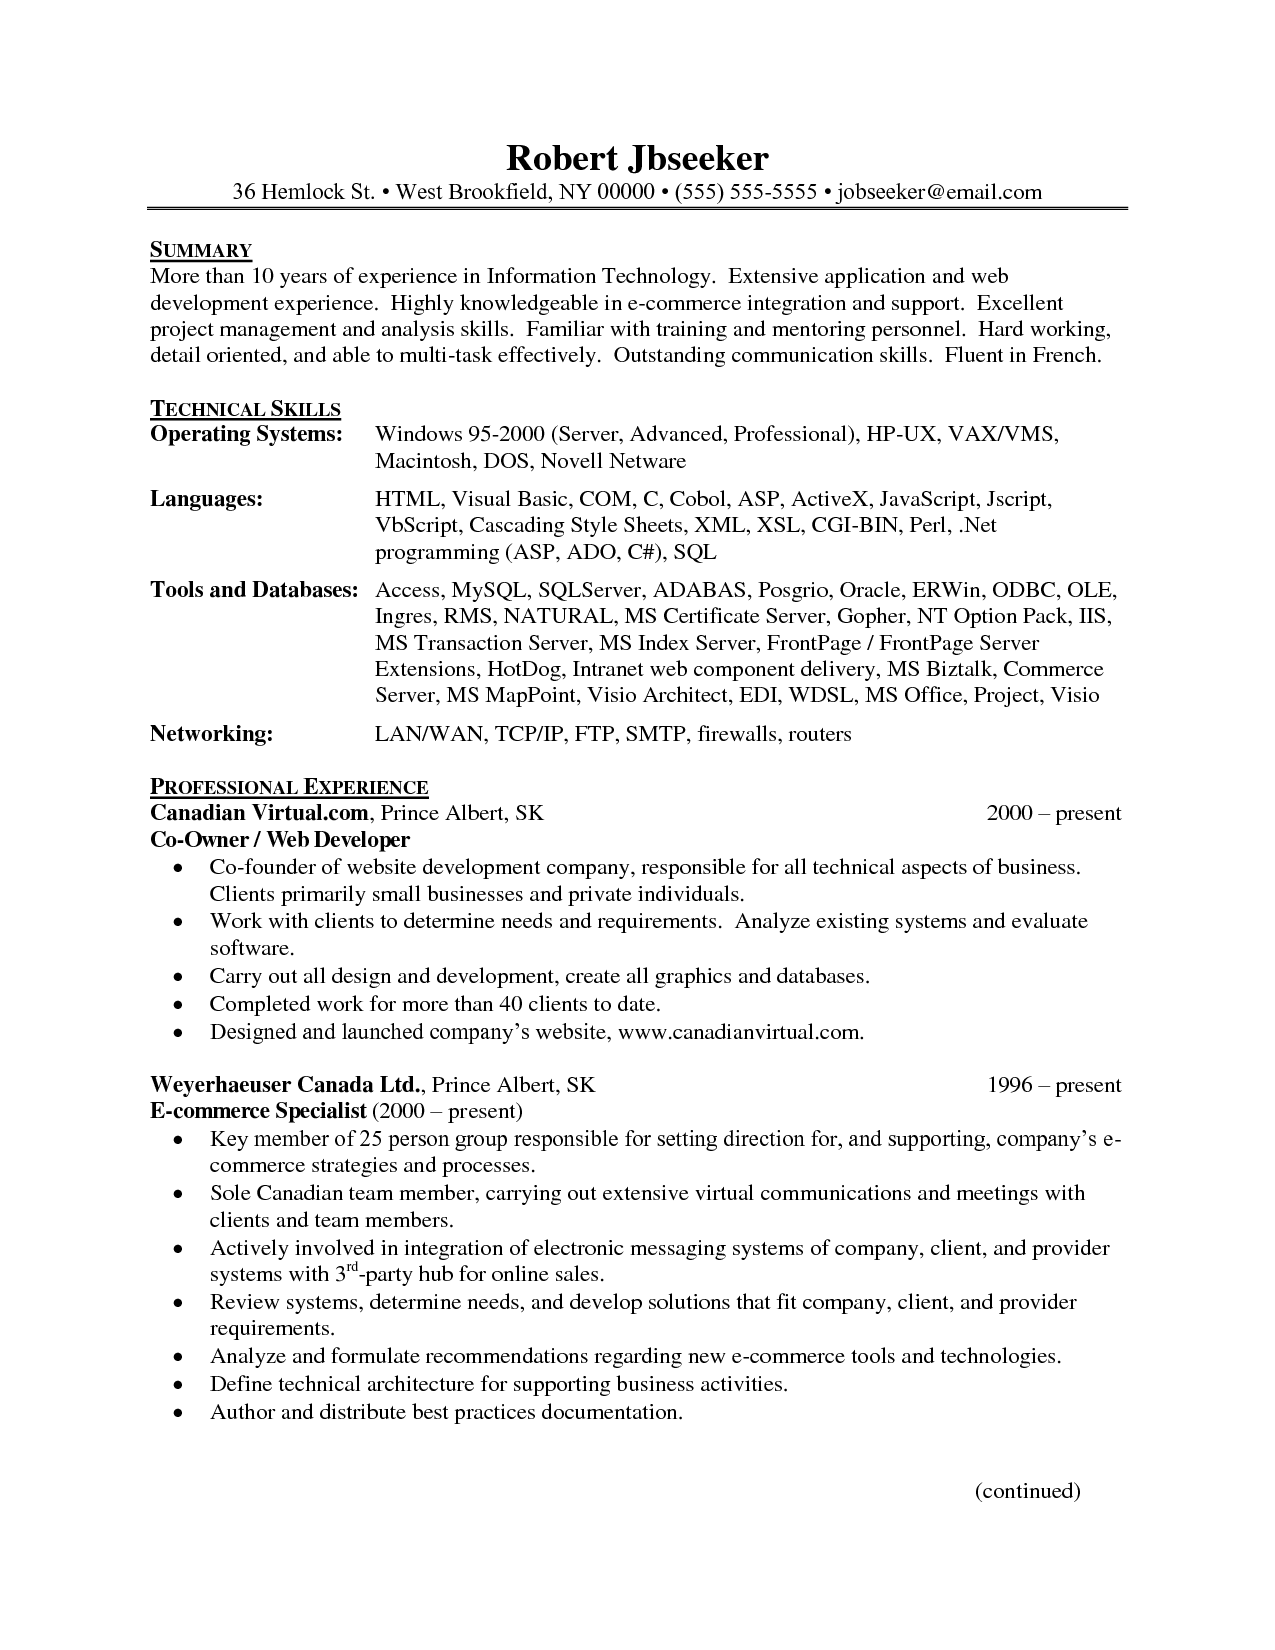 Resume Format Doc For Experienced Web Designer Resume Example Download Web Designer Resume Example